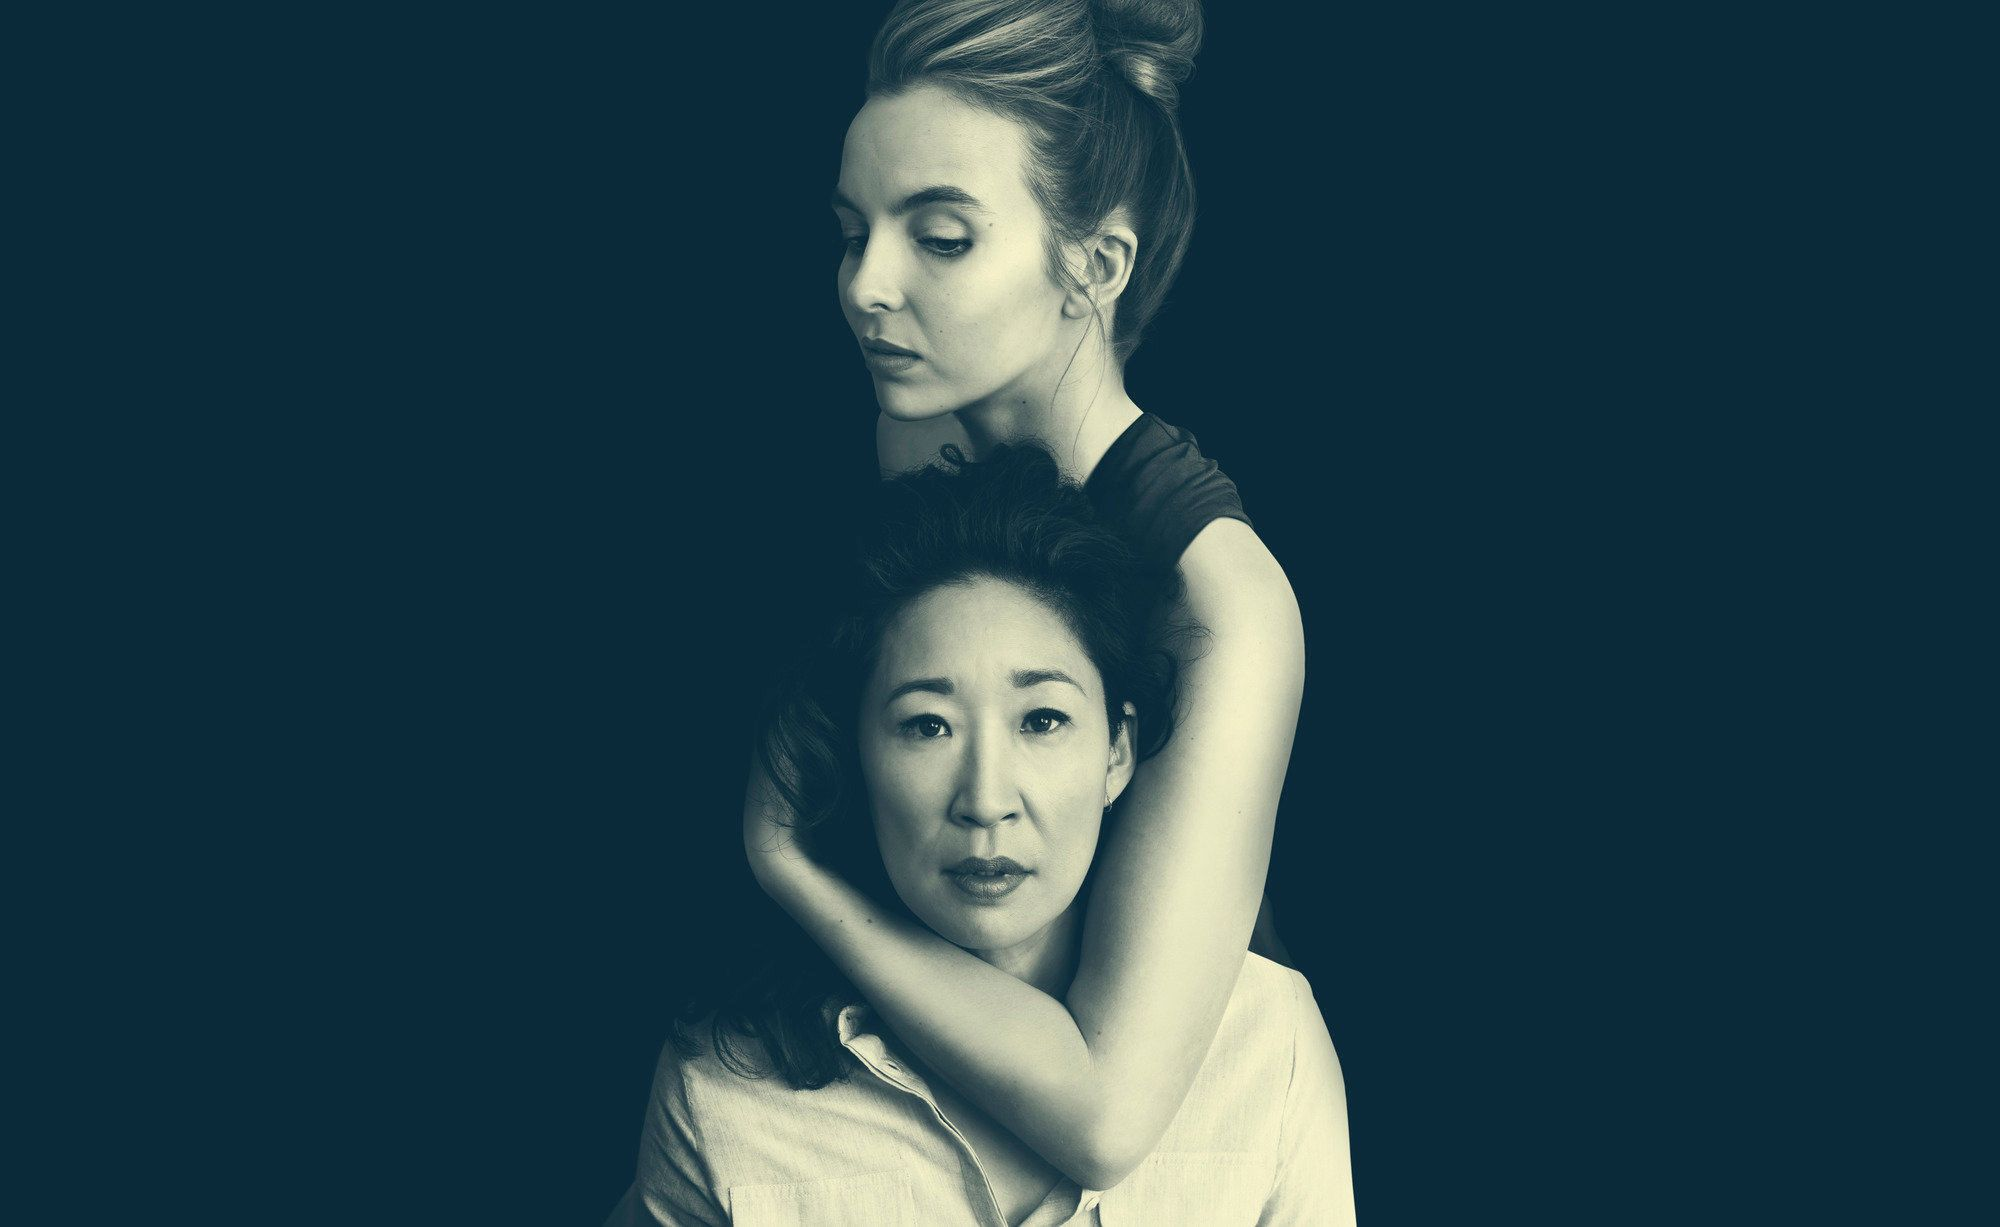 'Killing Eve' Series 2 Gets US Airdate, And UK Fans Are Already Worried About